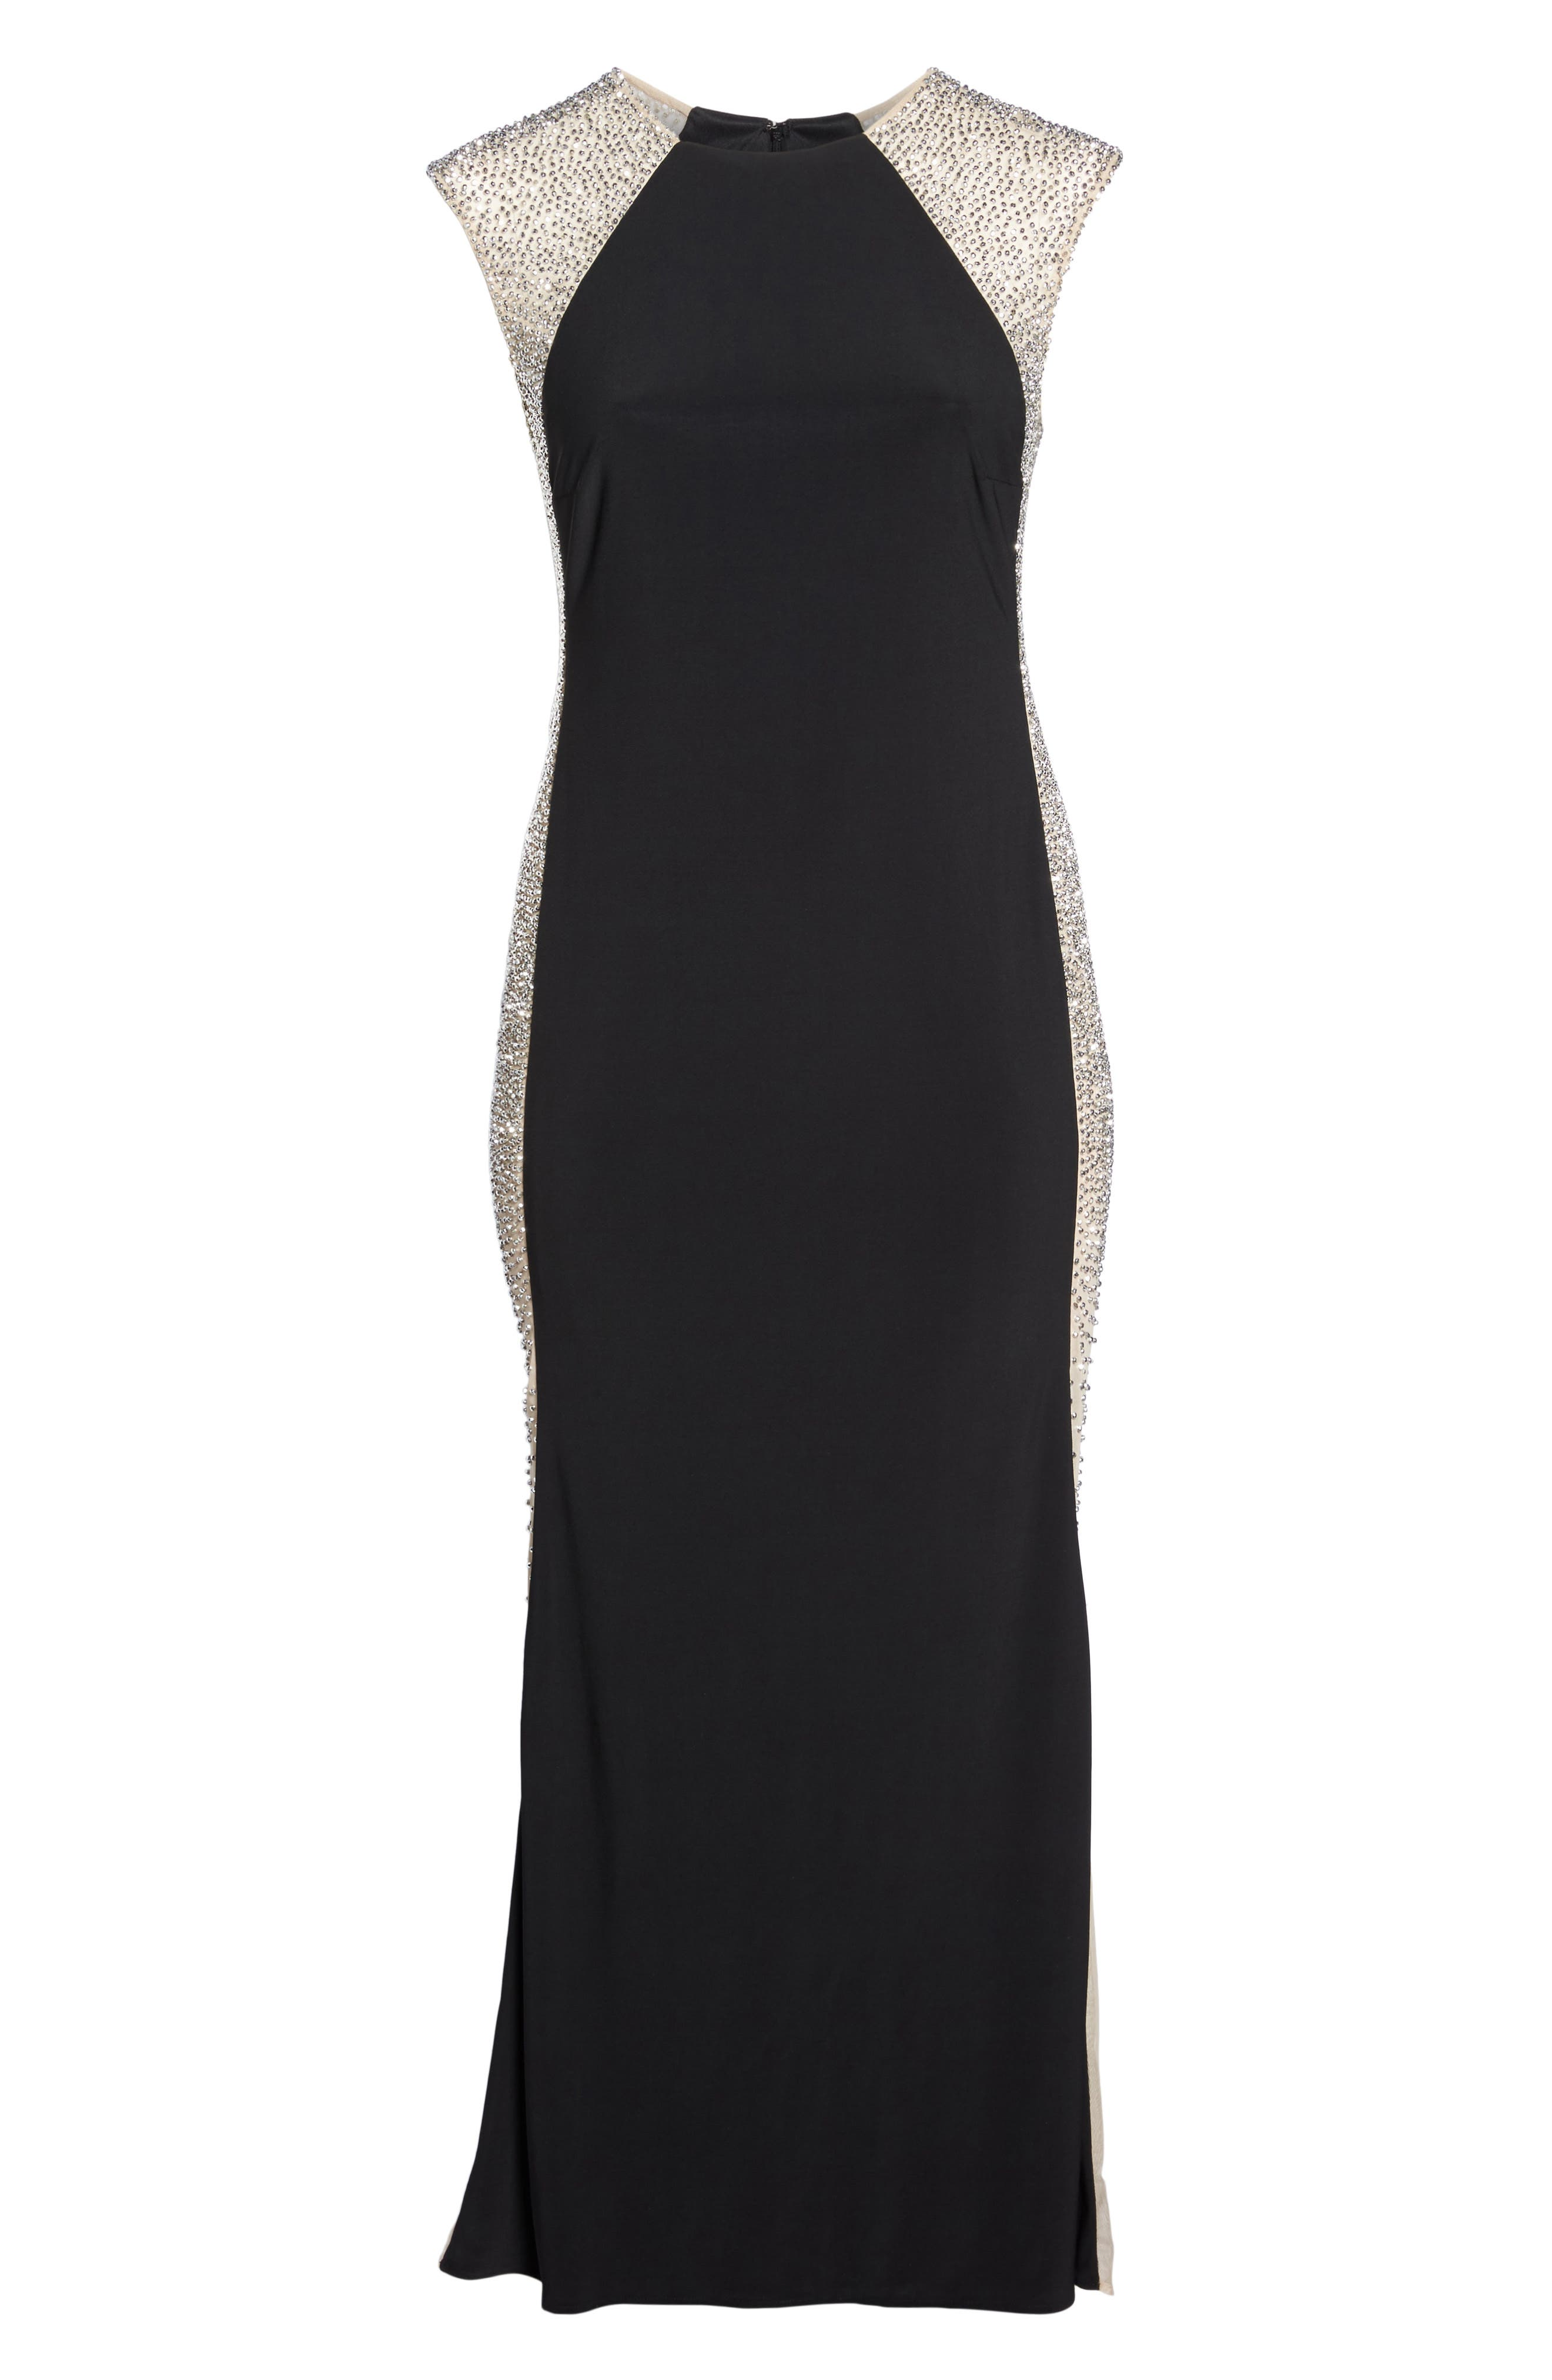 Beaded High Neck Column Gown,                             Alternate thumbnail 7, color,                             Black/ Nude/ Silver